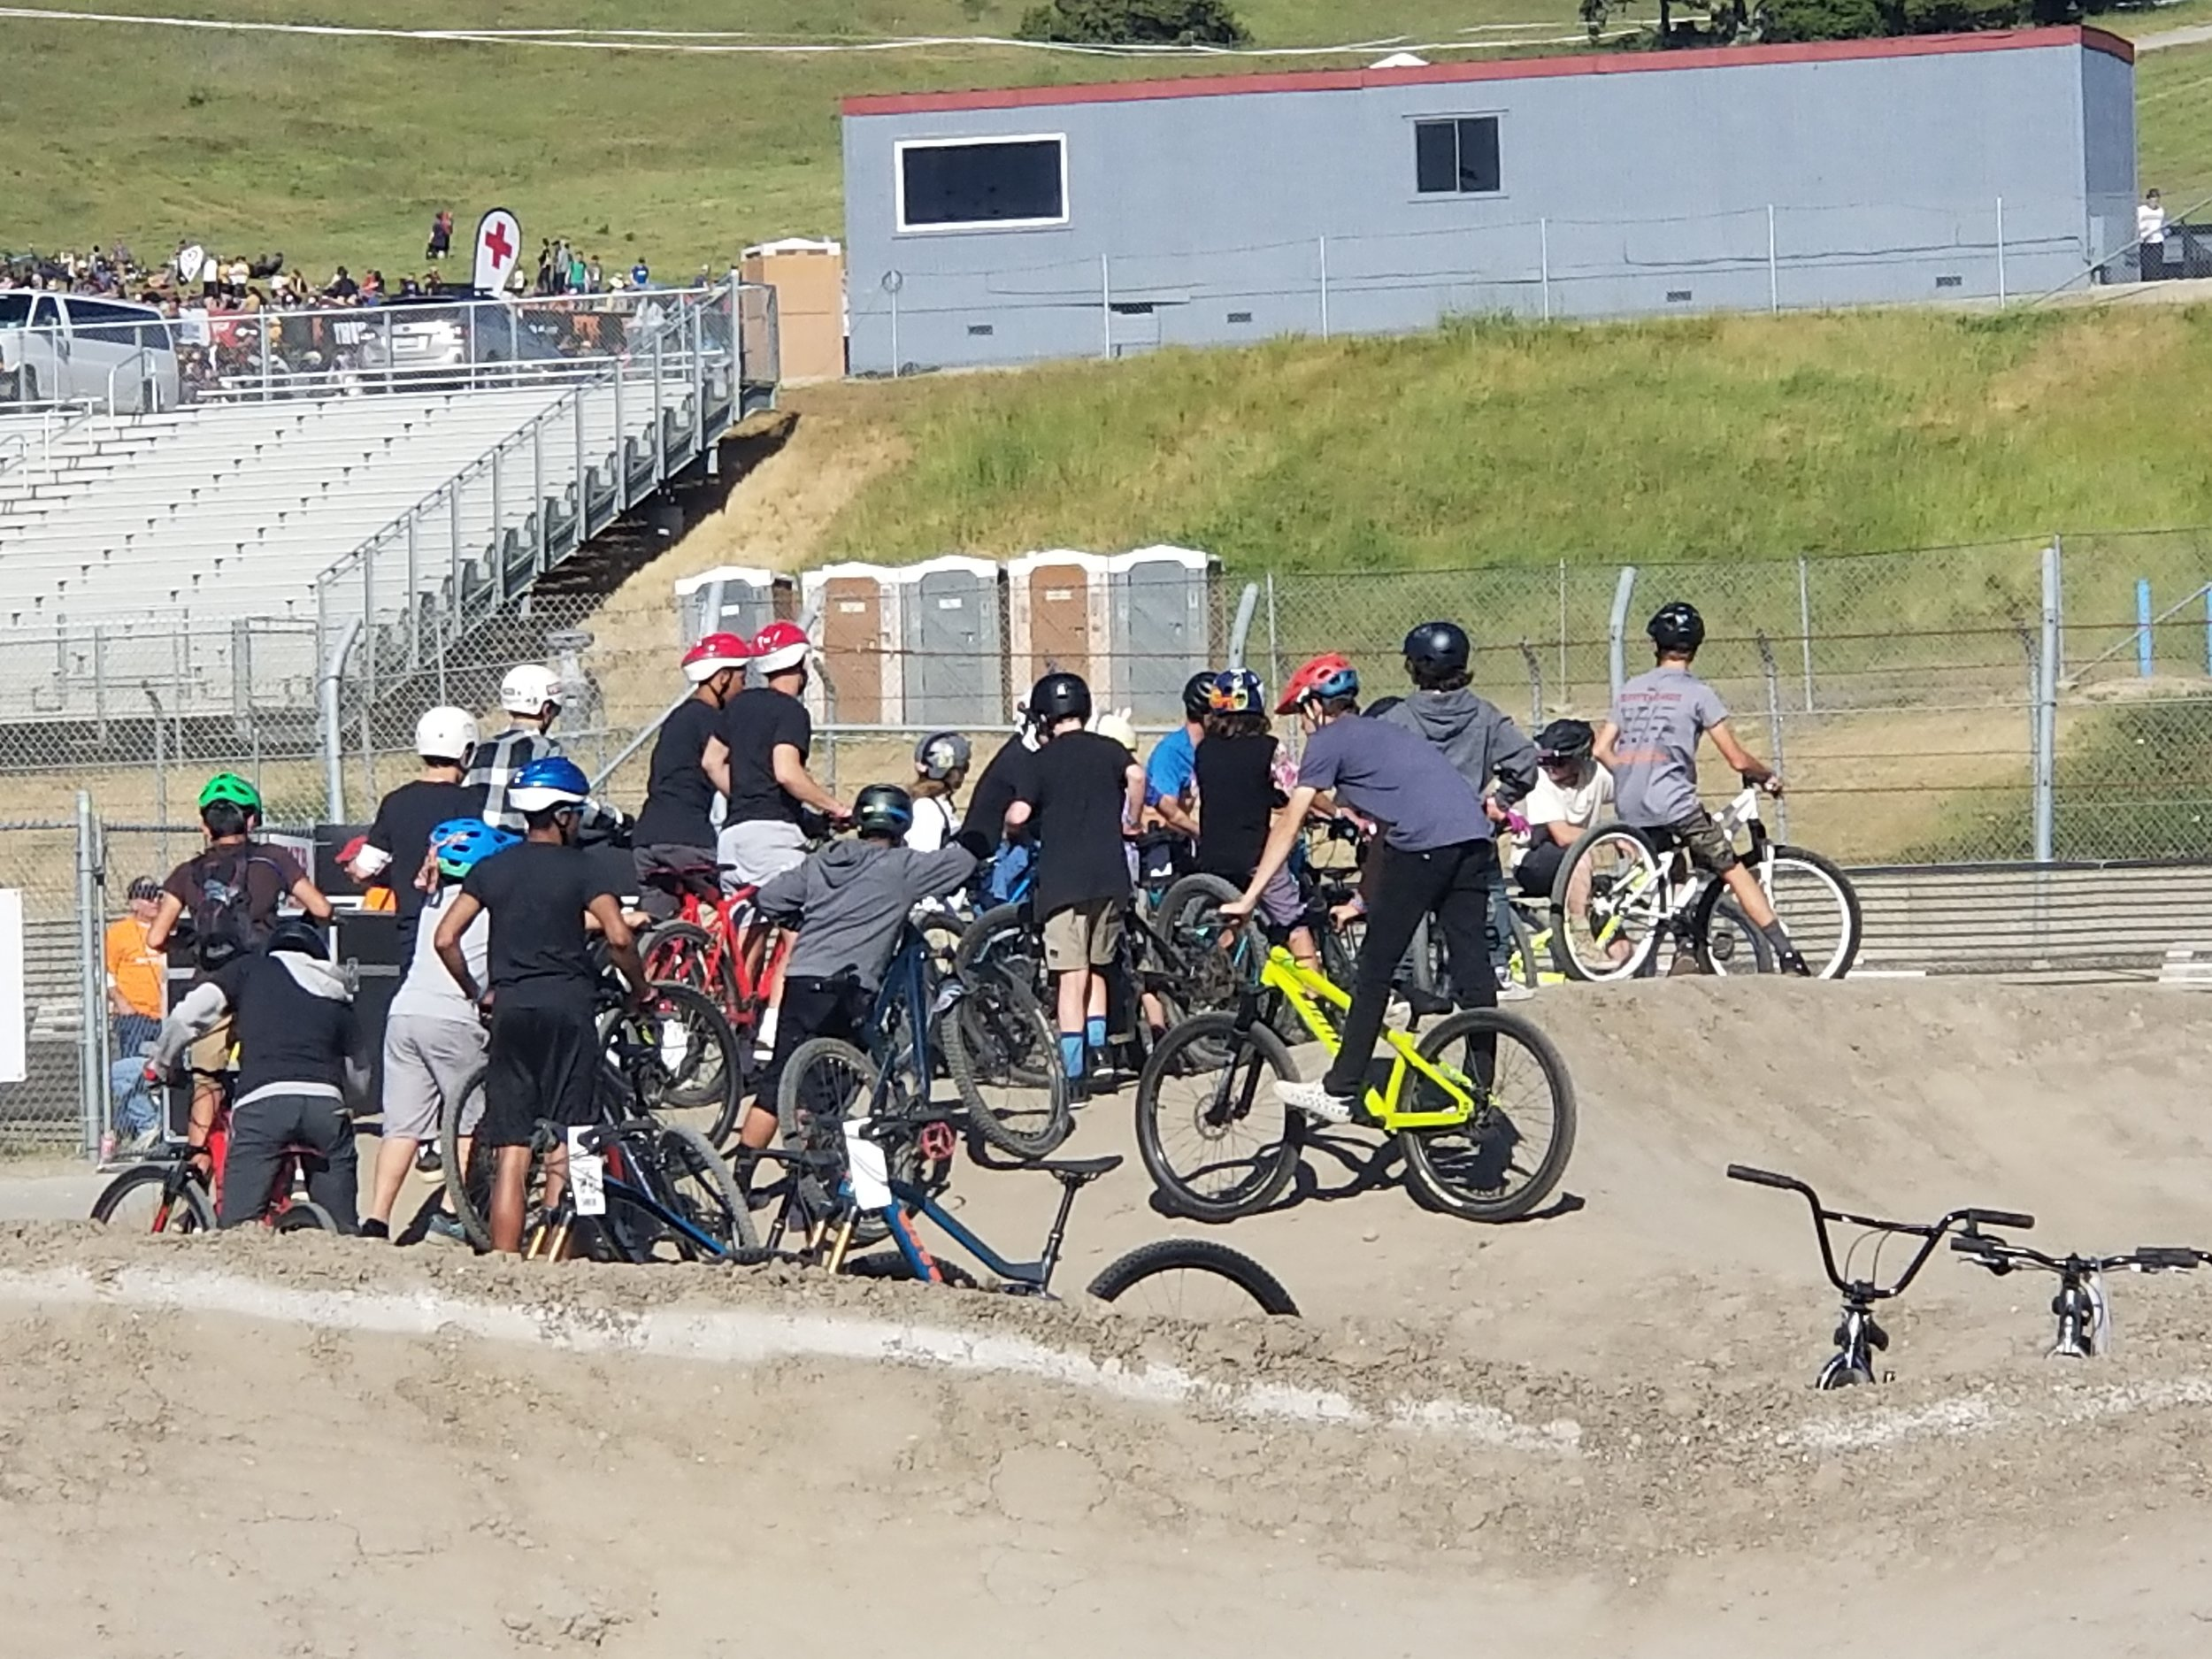 High Desert Riders_SeaOtter 2019.jpg